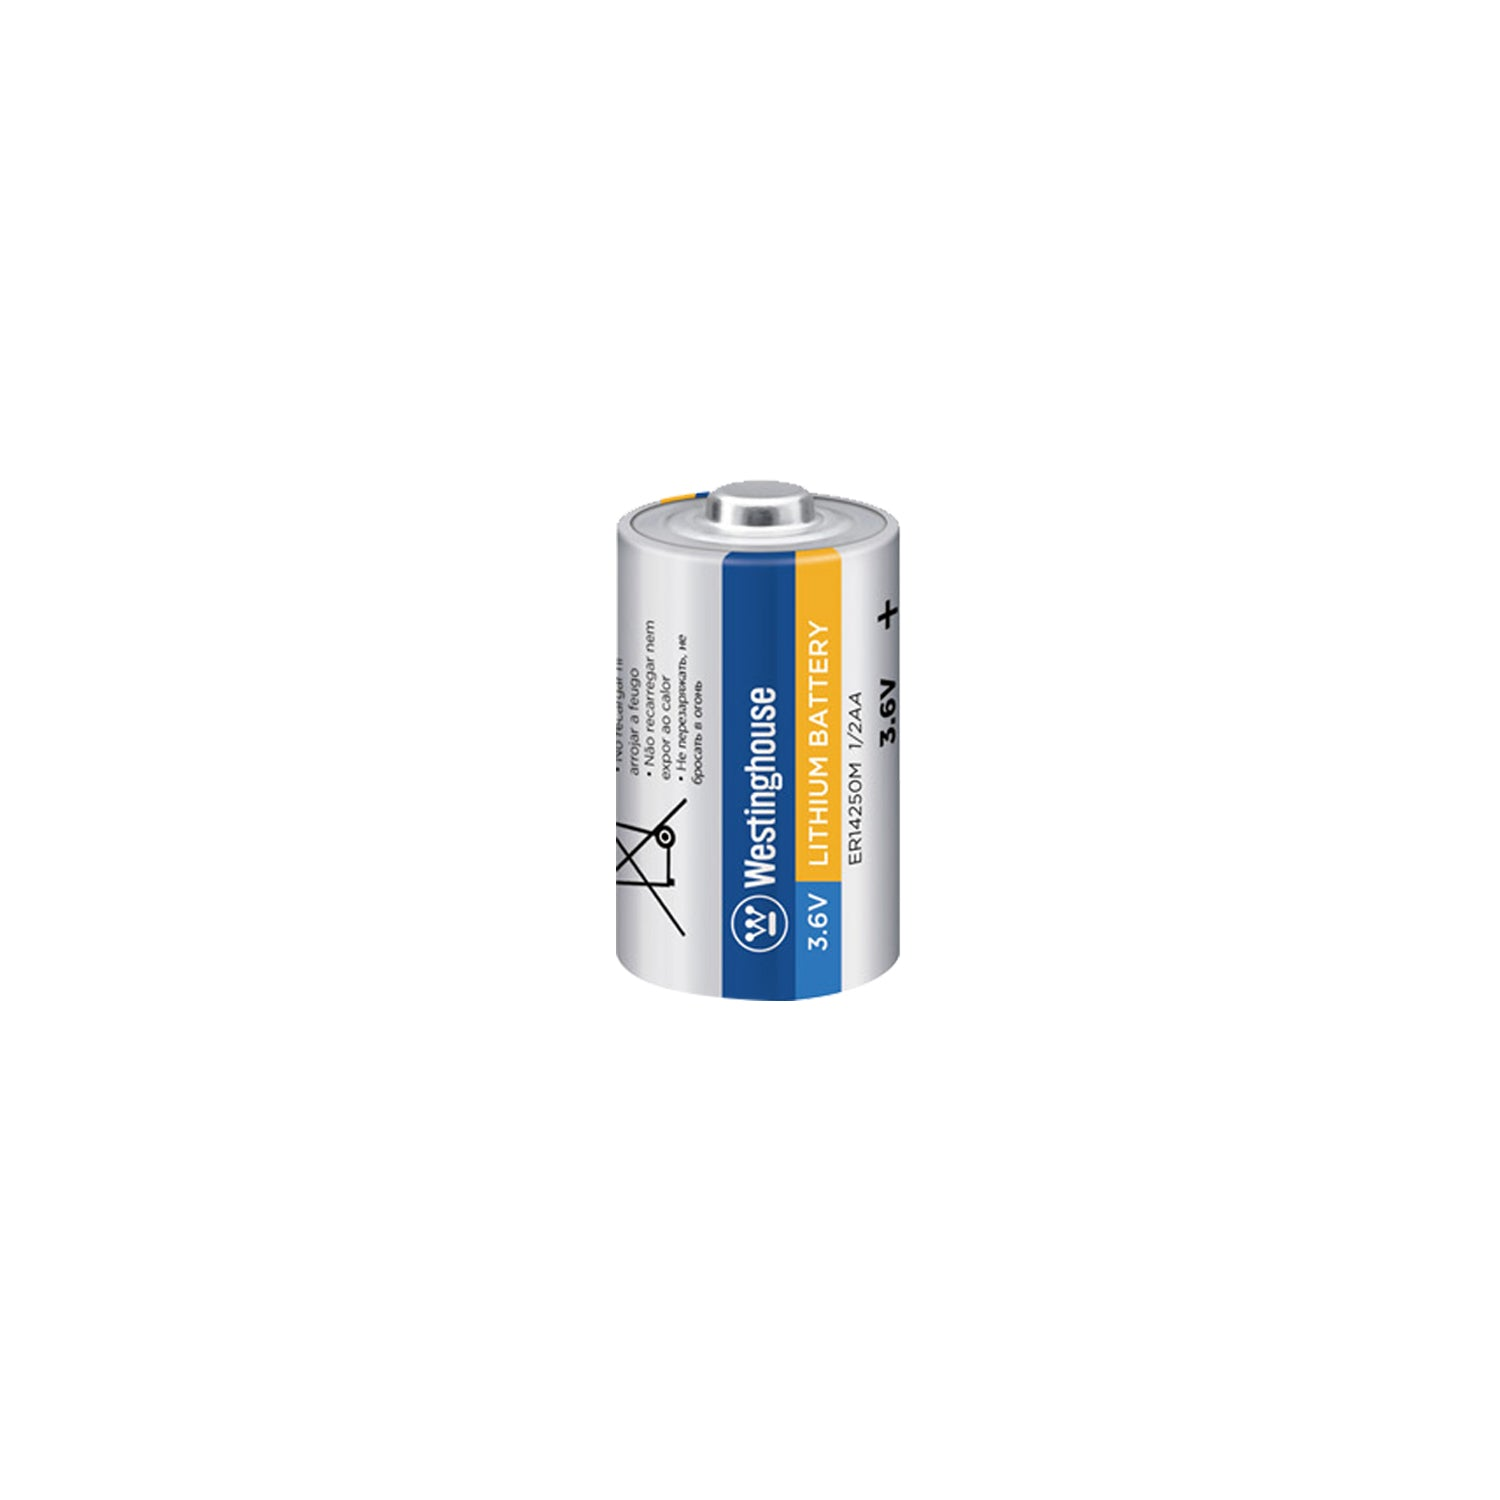 ER14250 1/2AA Size 3.6V Lithium Primary Battery for Specialized Devices Bulk